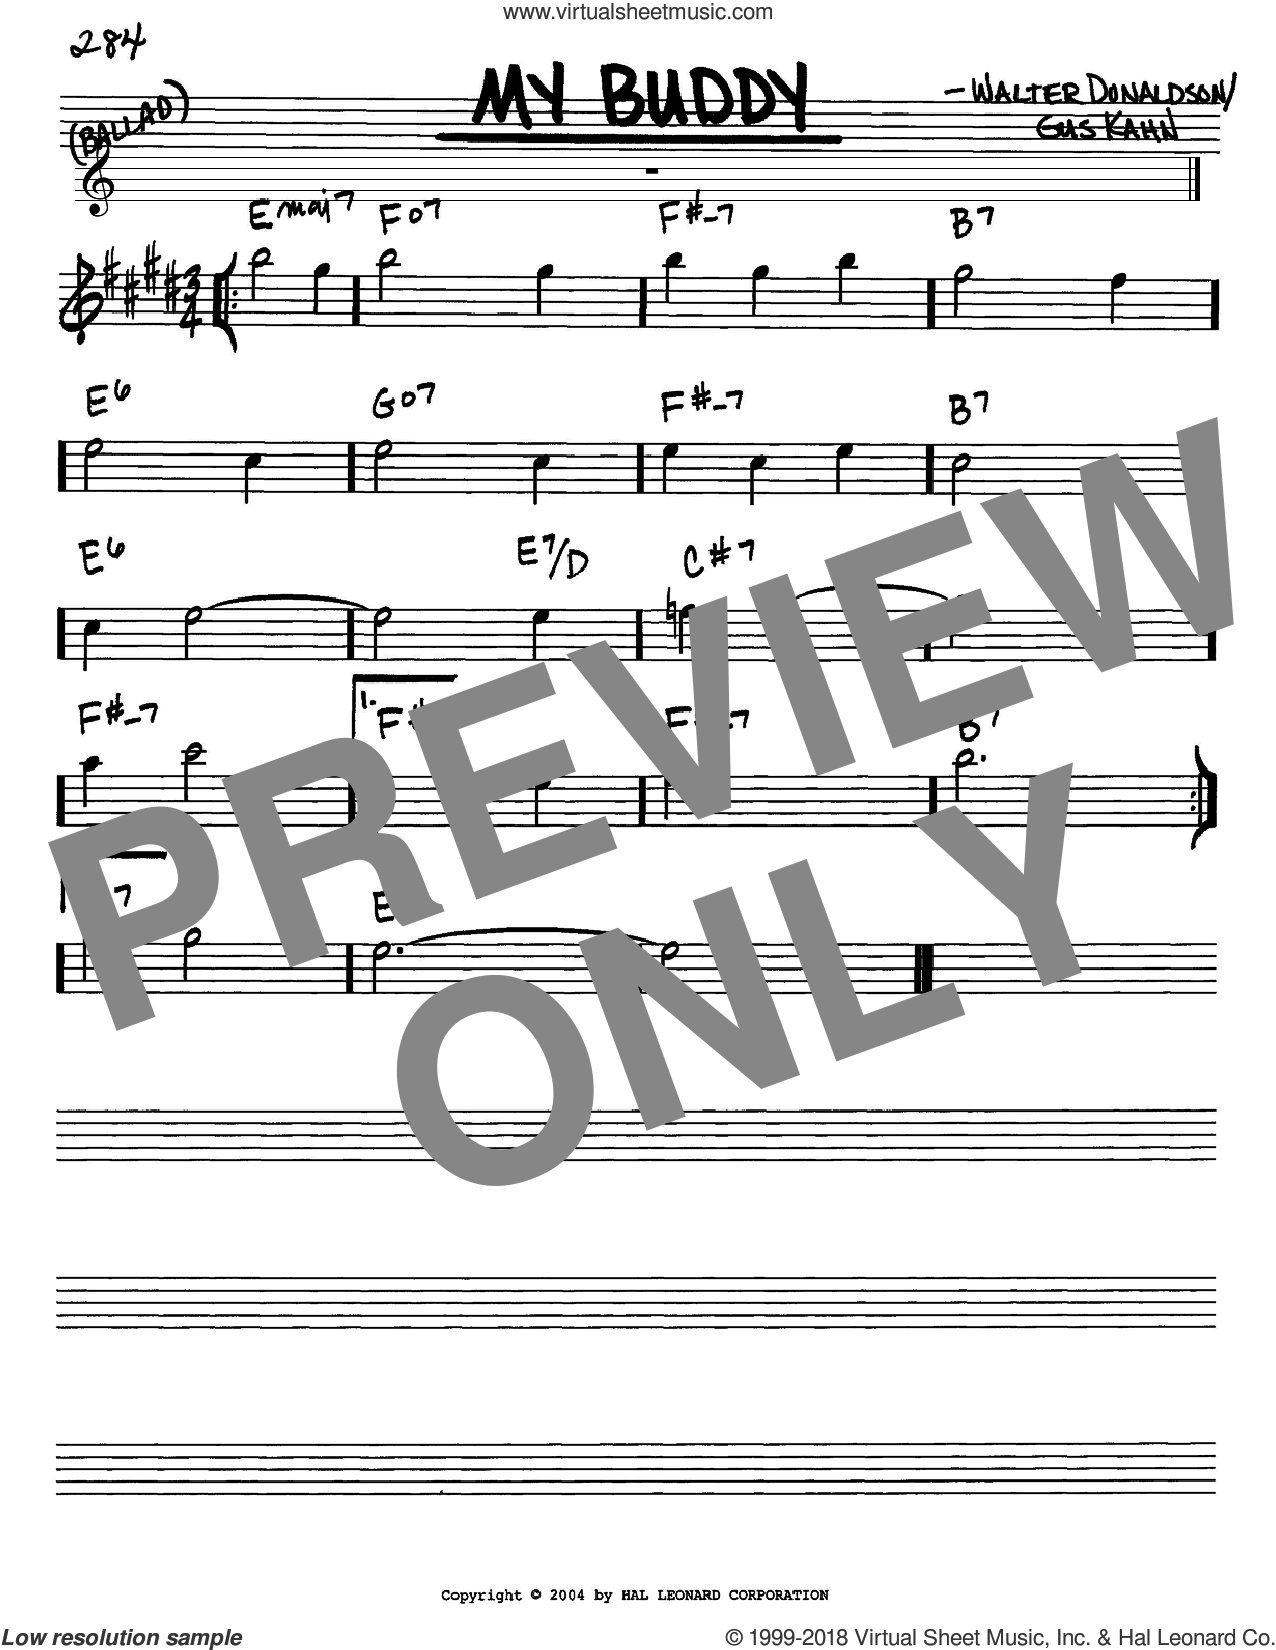 My Buddy sheet music for voice and other instruments (Eb) by Walter Donaldson and Gus Kahn. Score Image Preview.